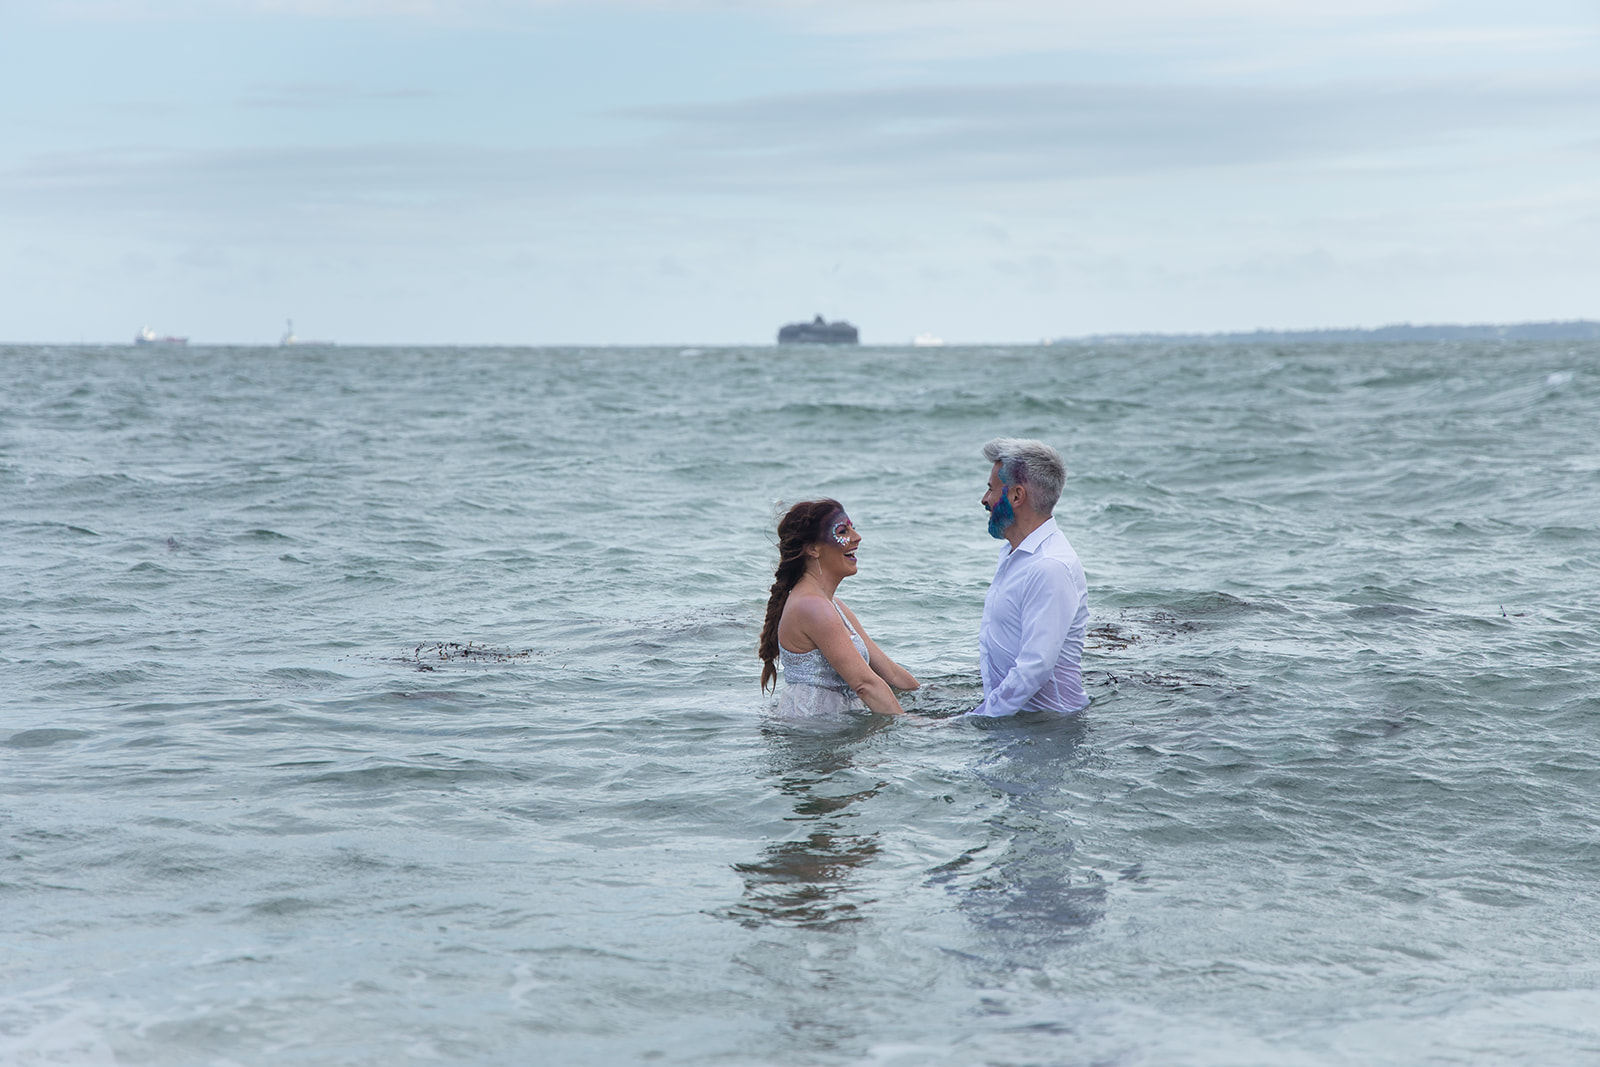 mermaid wedding - beach wedding - quirky wedding - unique wedding - alternative seaside wedding - alternative wedding - bride and groom swimming in sea